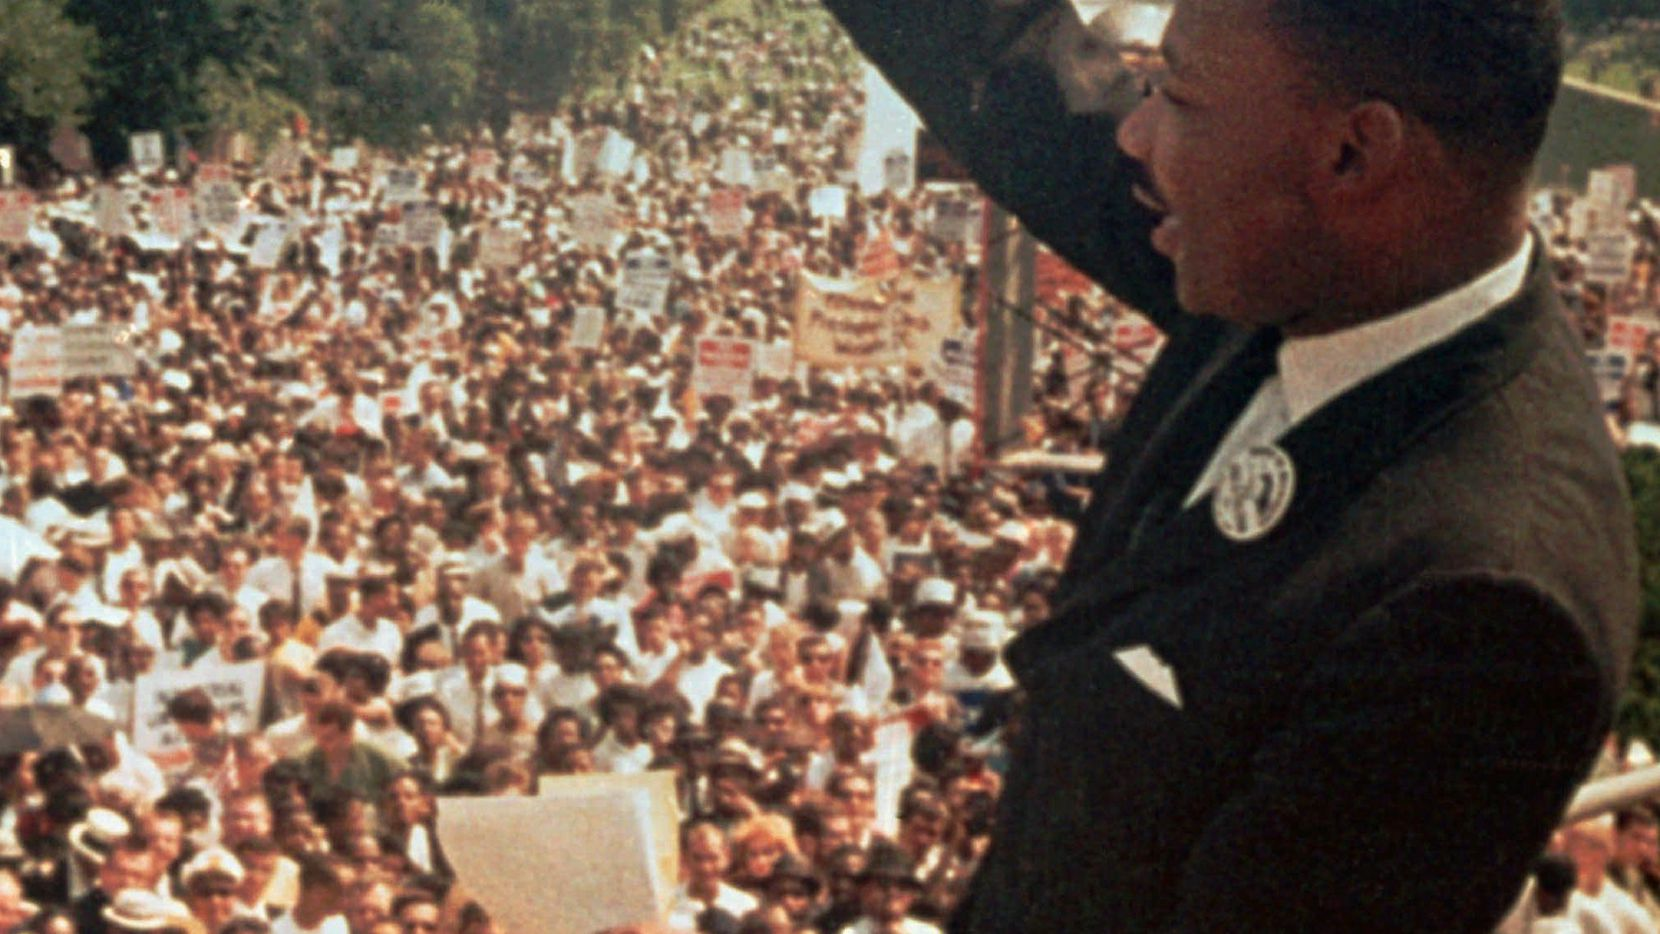 """The Rev. Martin Luther King Jr. waves to the crowd at the Lincoln Memorial on Aug. 28, 1963. Grand Prairie will rename N.W. and S.W. 19th St. to ML King Jr. Blvd. on Saturday, the 58th anniversary of King's """"I Have a Dream"""" speech."""